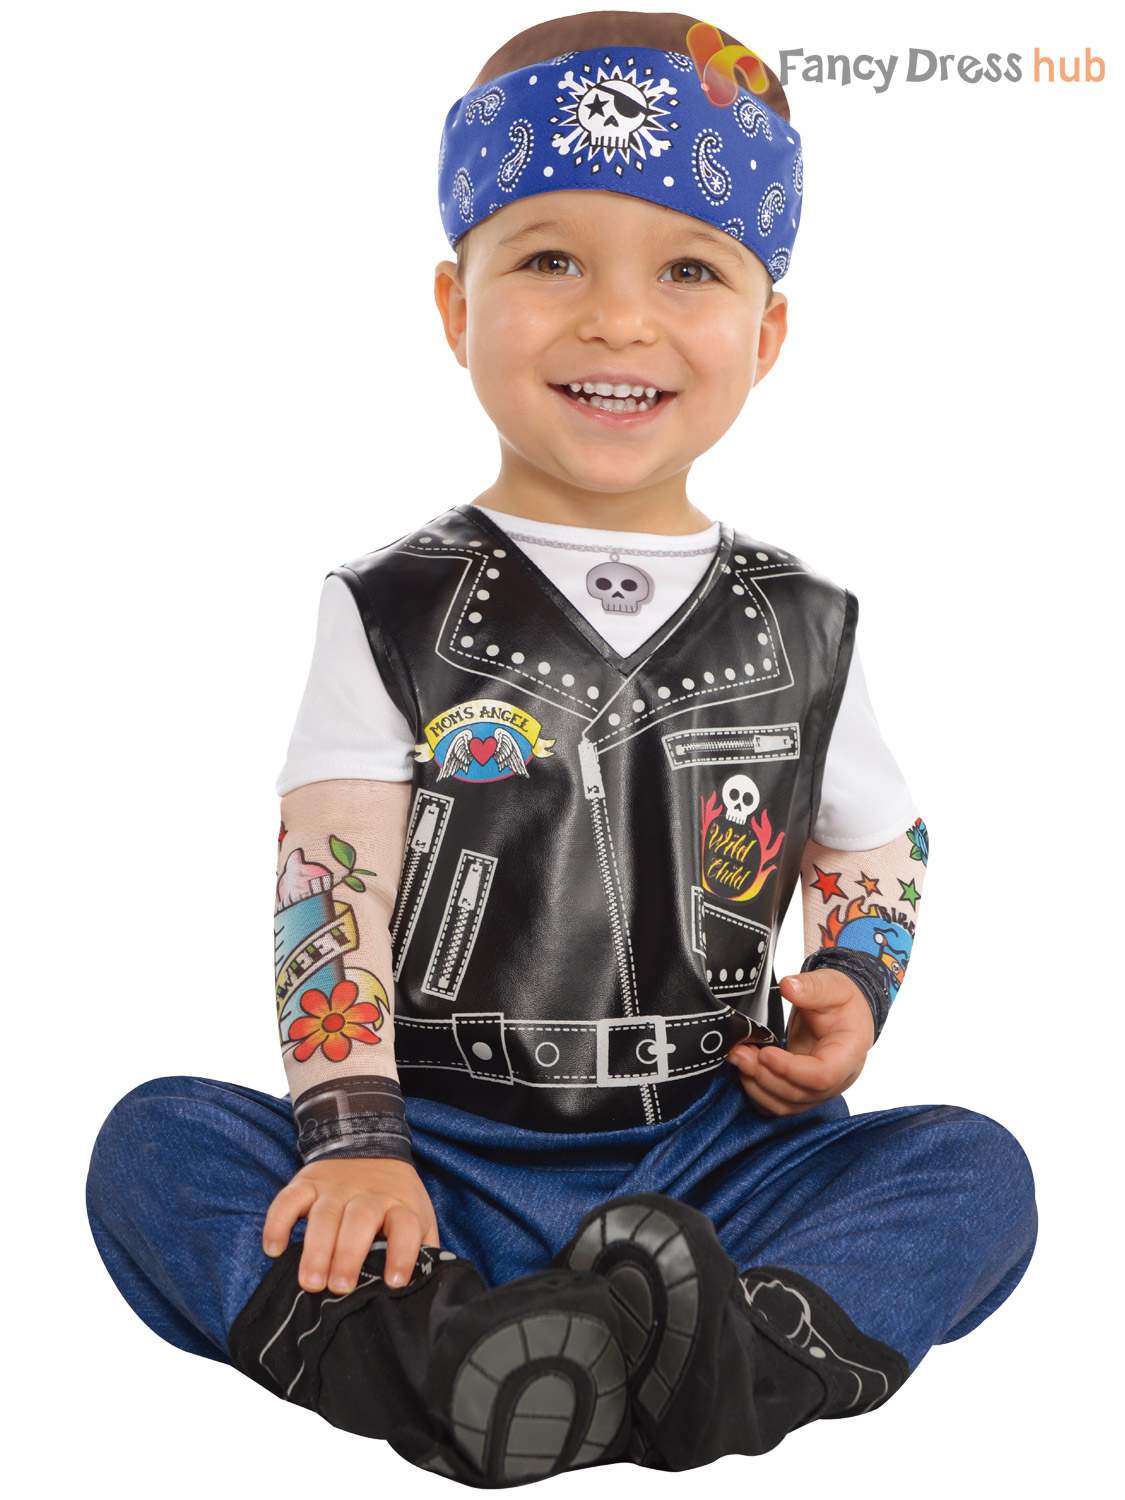 Biker Kids Clothing & Accessories from CafePress are professionally printed and made of the best materials in a wide range of colors and sizes.